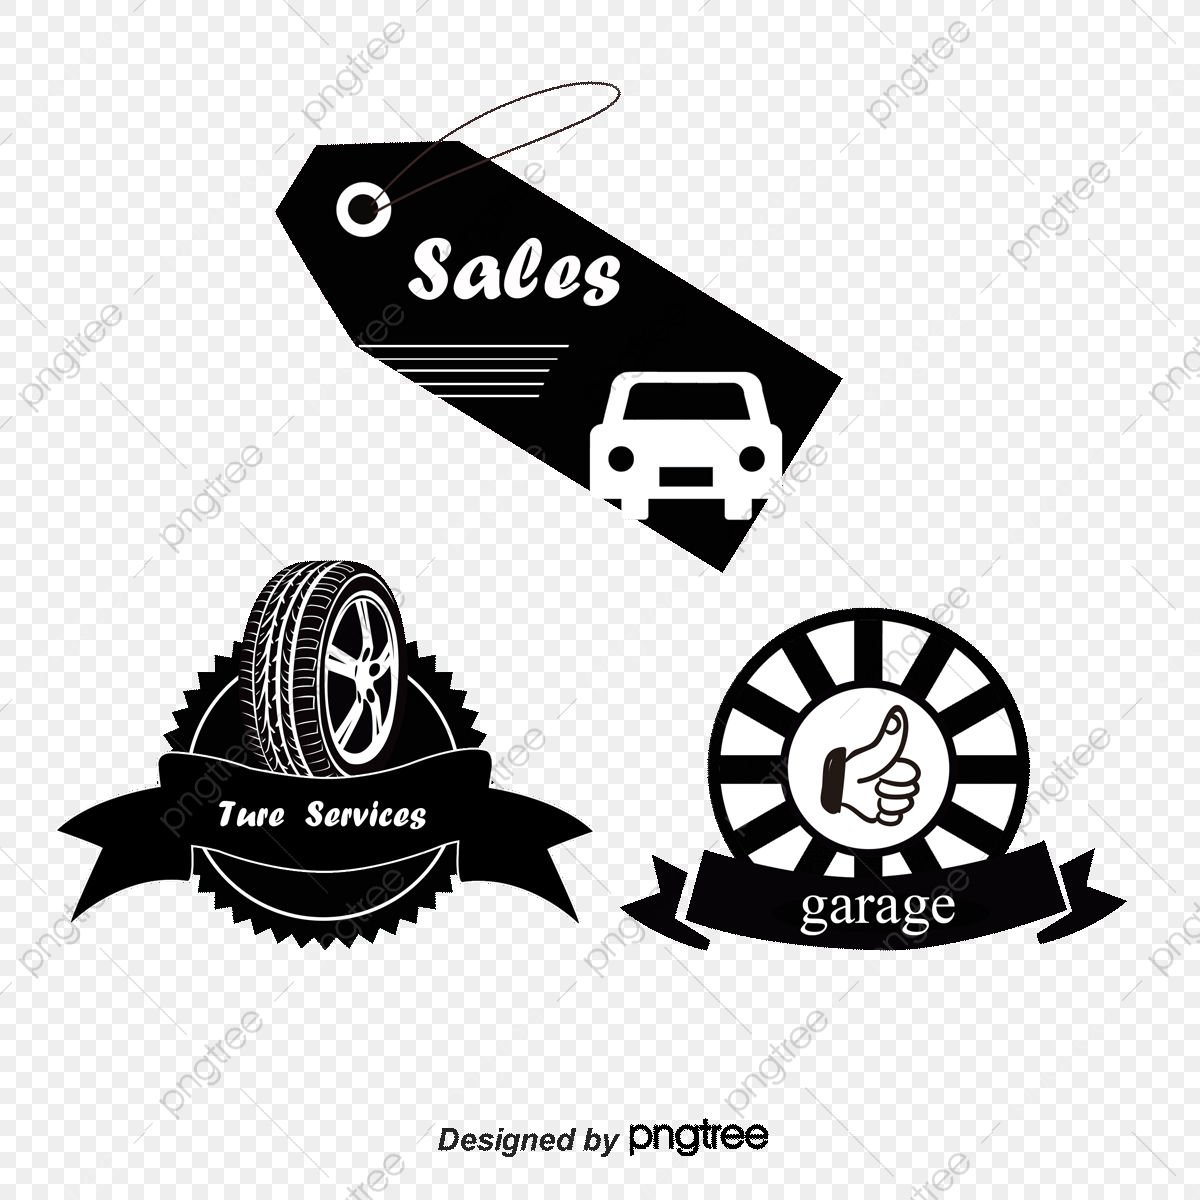 Motor Vehicles And Parts Silhouettes Vector Free Download Car.